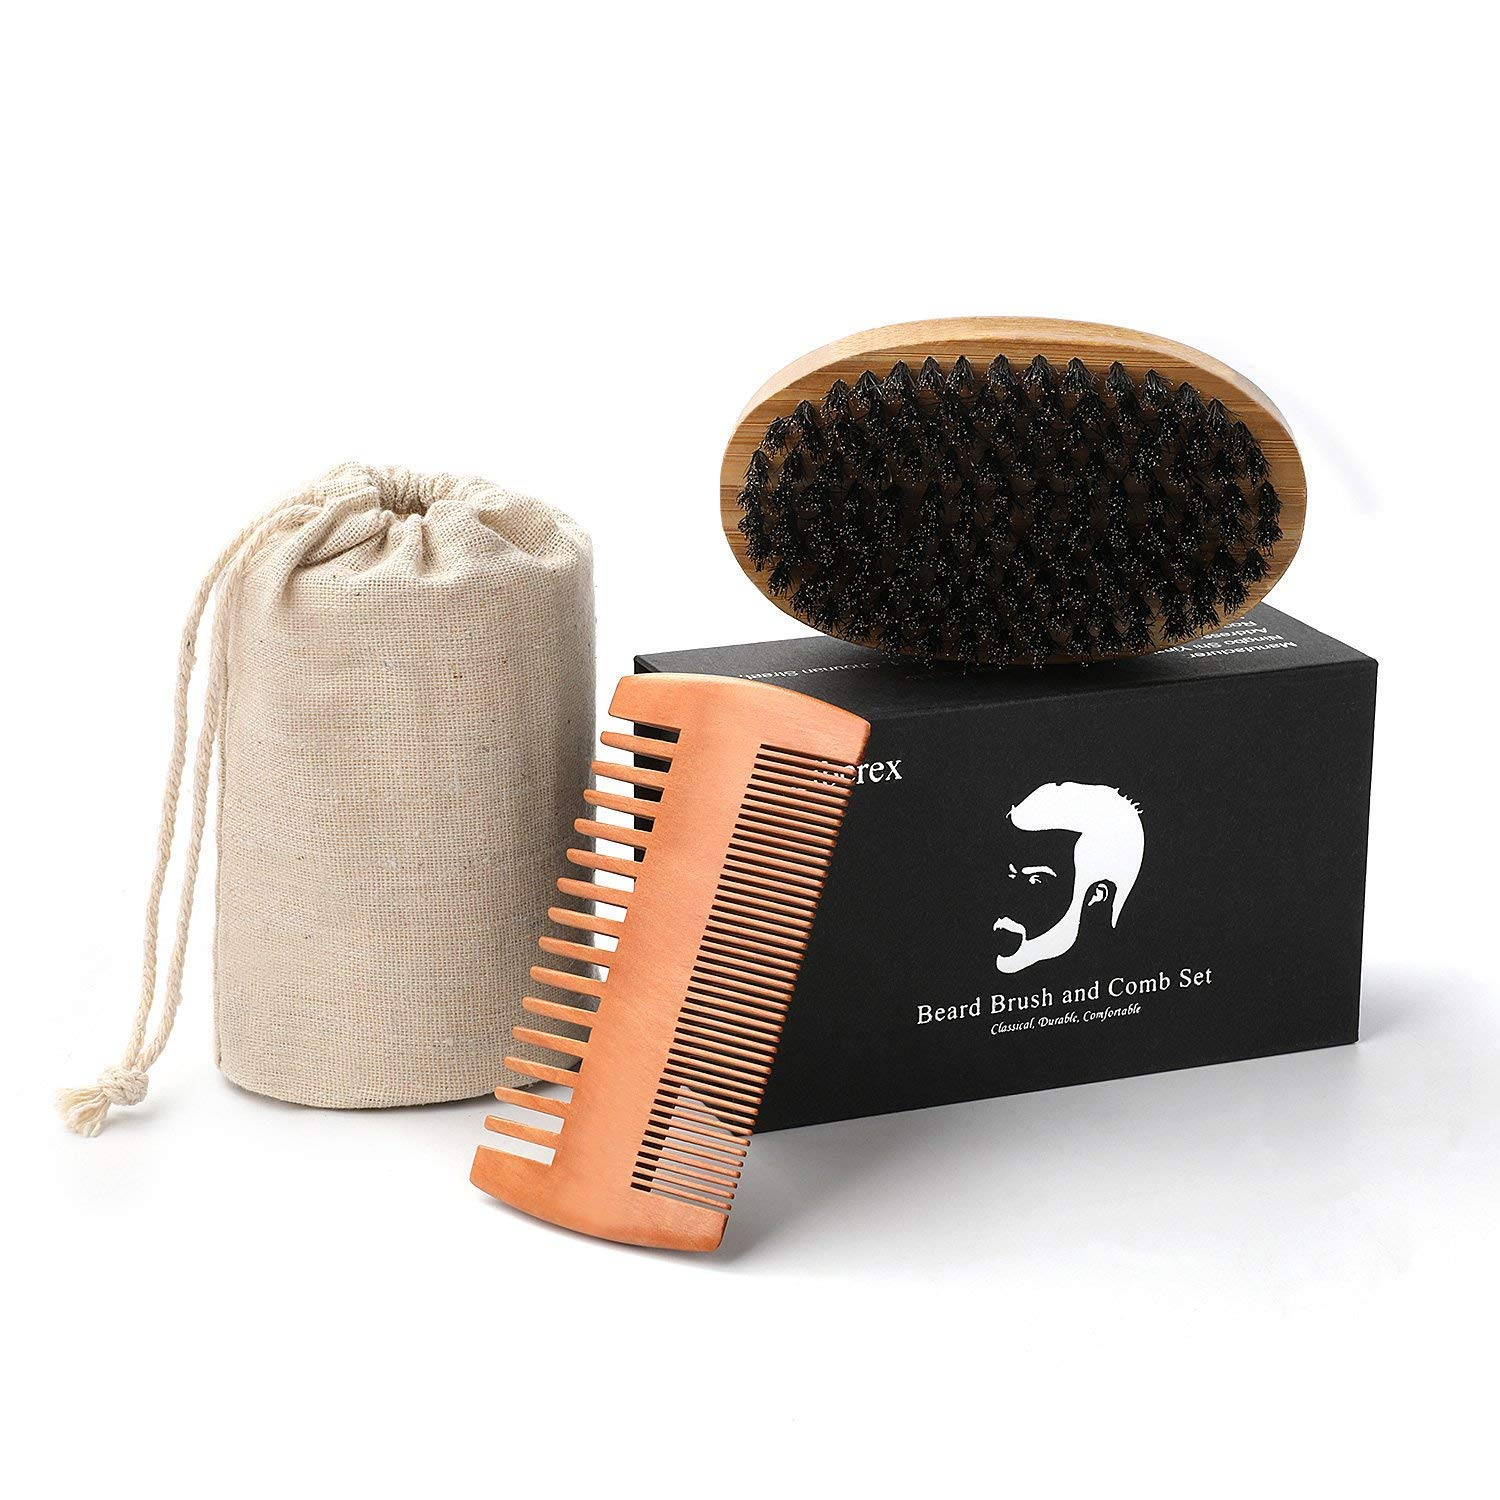 Beard Brush and Comb Set for Men, Liberex Handmade Wooden Comb and Boar Bristle Beard Brush Kit, with Friendly Gift Box and Cotton Bag, Best Partner for Grooming Facial Hair or Great Gift Idea